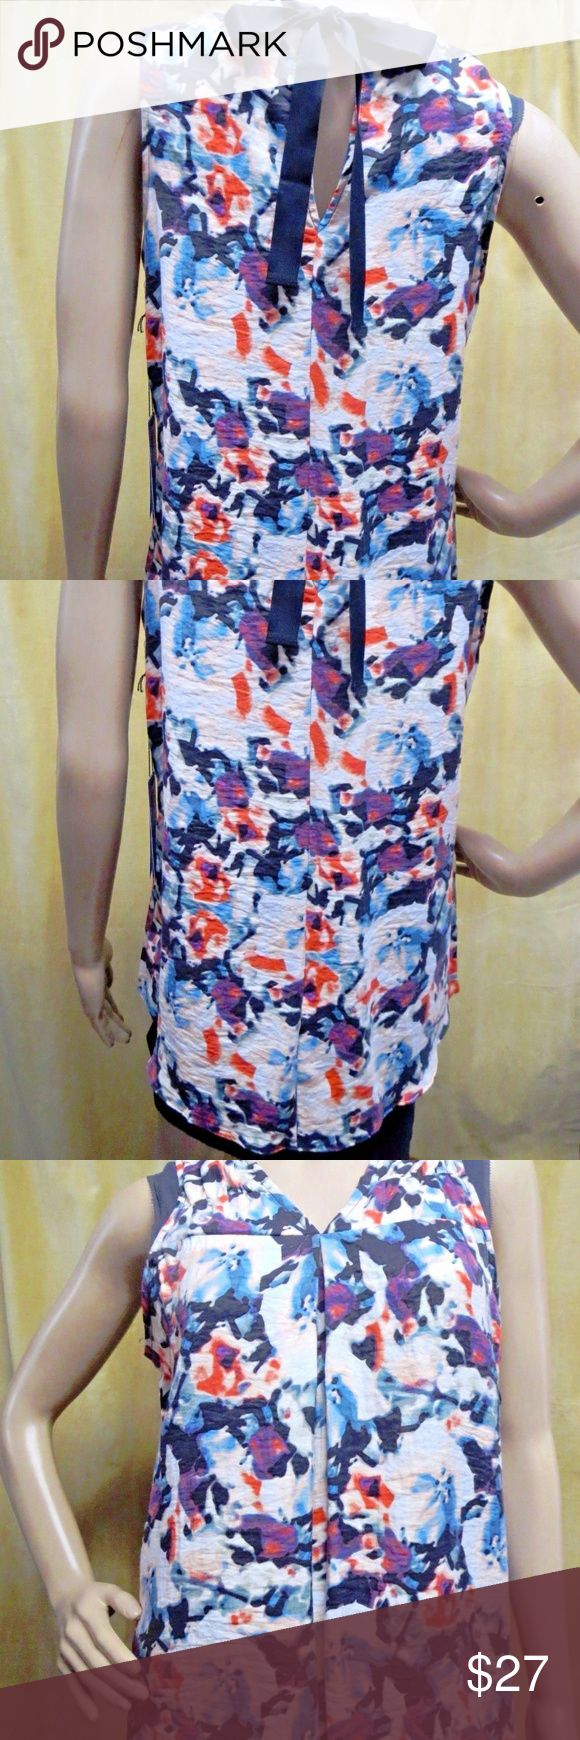 "Simply Vera Wang Tie Neck Watercolor Tunic Petite NWT New Retail $54.00 Pullover V-neckline with pintuck ruching Keyhole ribbon bow tie neckline in back Allover watercolor floral printed Sleeveless Chiffon trim High low rounded hem Woven construction 78% rayon, 22% nylon Hand wash Size PXS:     Chest 17"" across front and length shoulder to hem 22.5"". Size PS :     Chest 18"" across front and length shoulder to hem 23"". Simply Vera Vera Wang Tops Blouses"